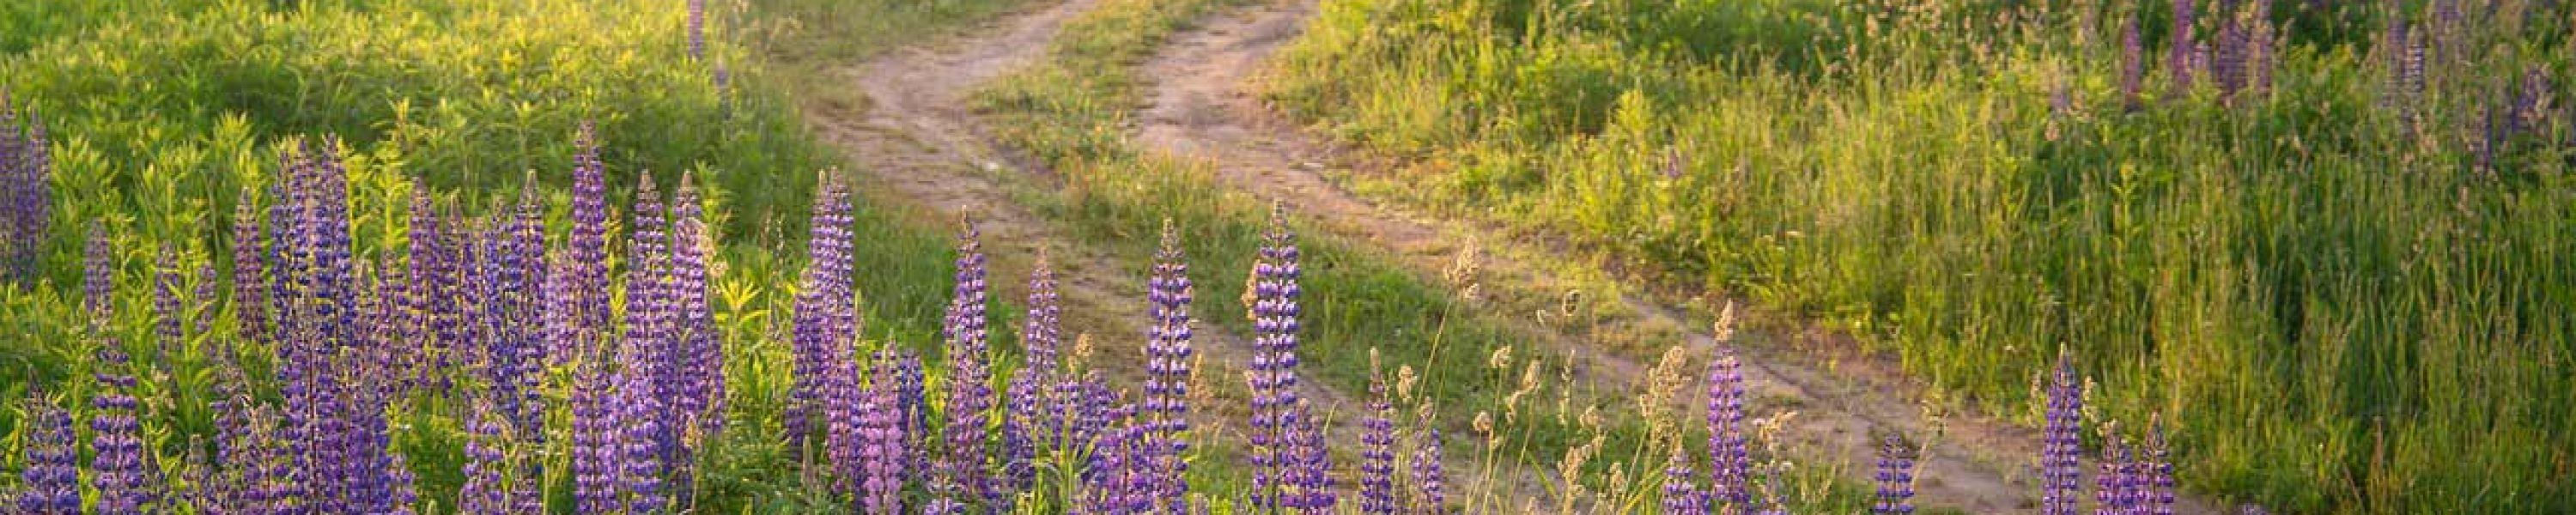 field-road-lupine-opt